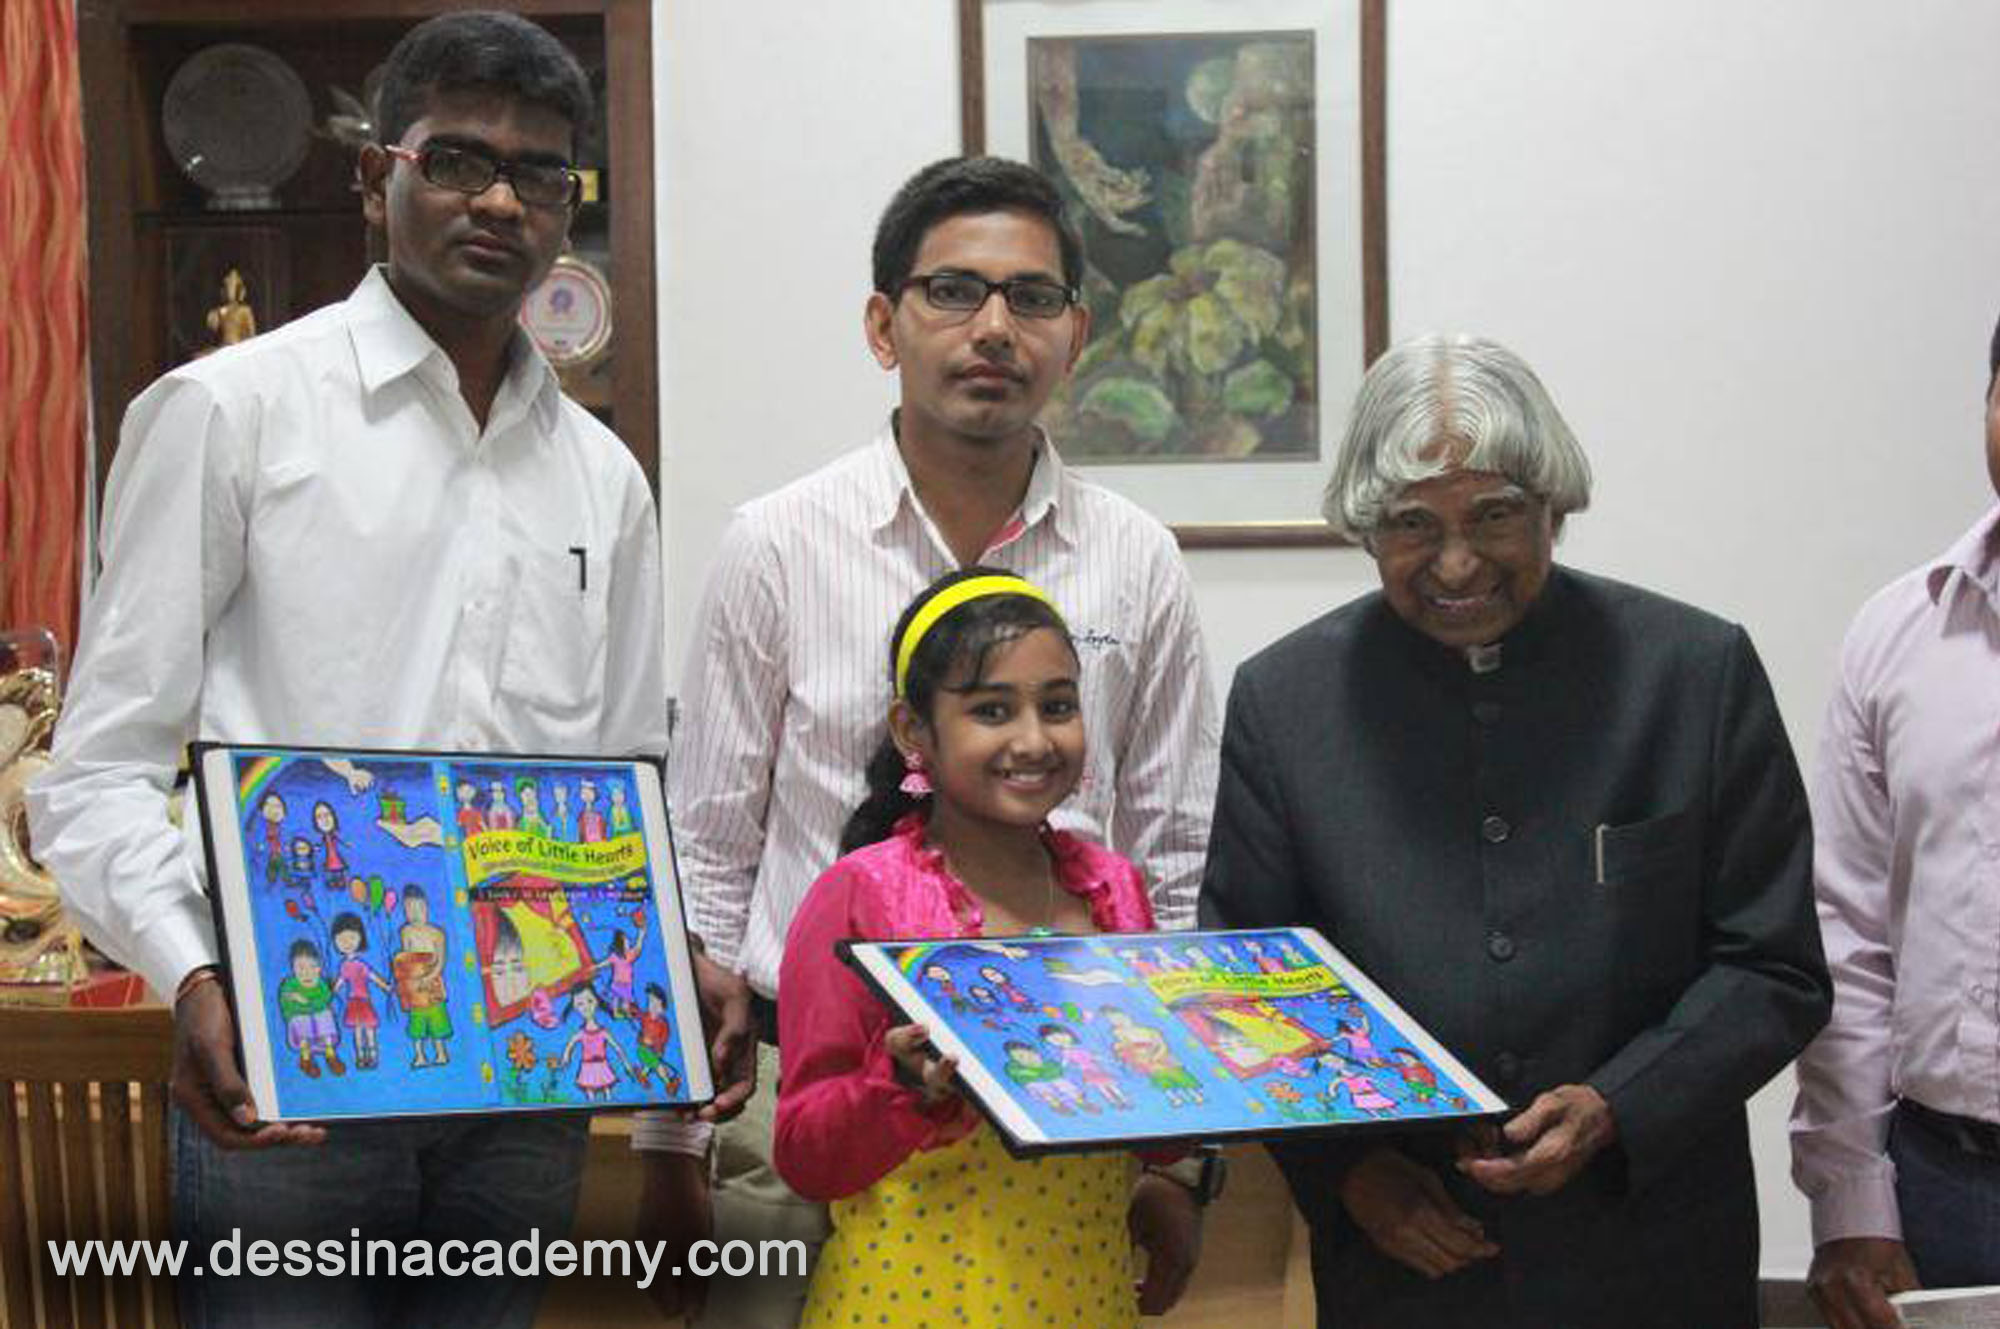 Dessin School of Arts Students Acheivement 1, Time kids Pre-School, oil painting classes for adults in Adyar